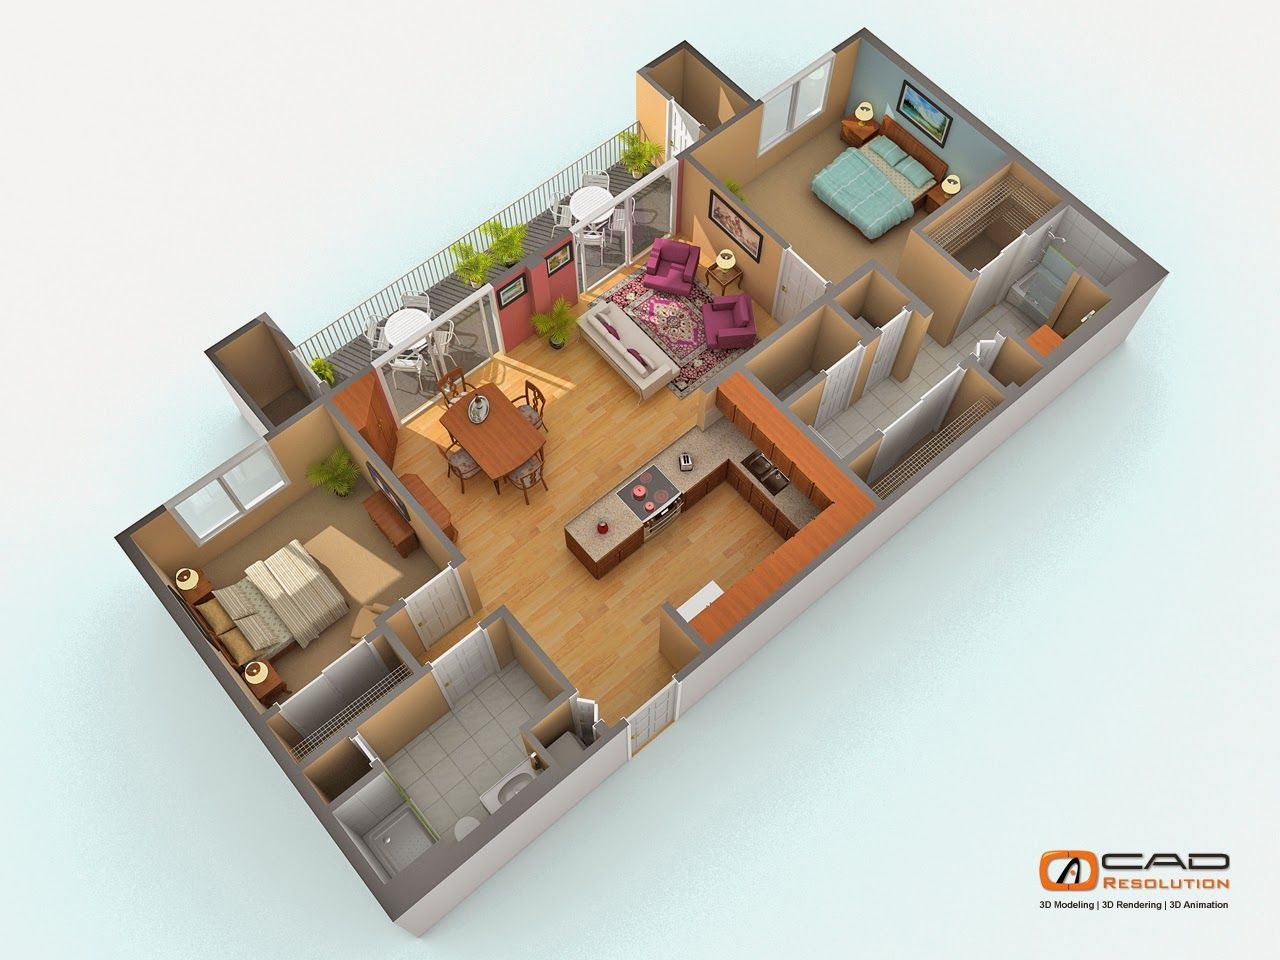 Outsourcing 2D CAD Architecture House Plans Design Services Has ...